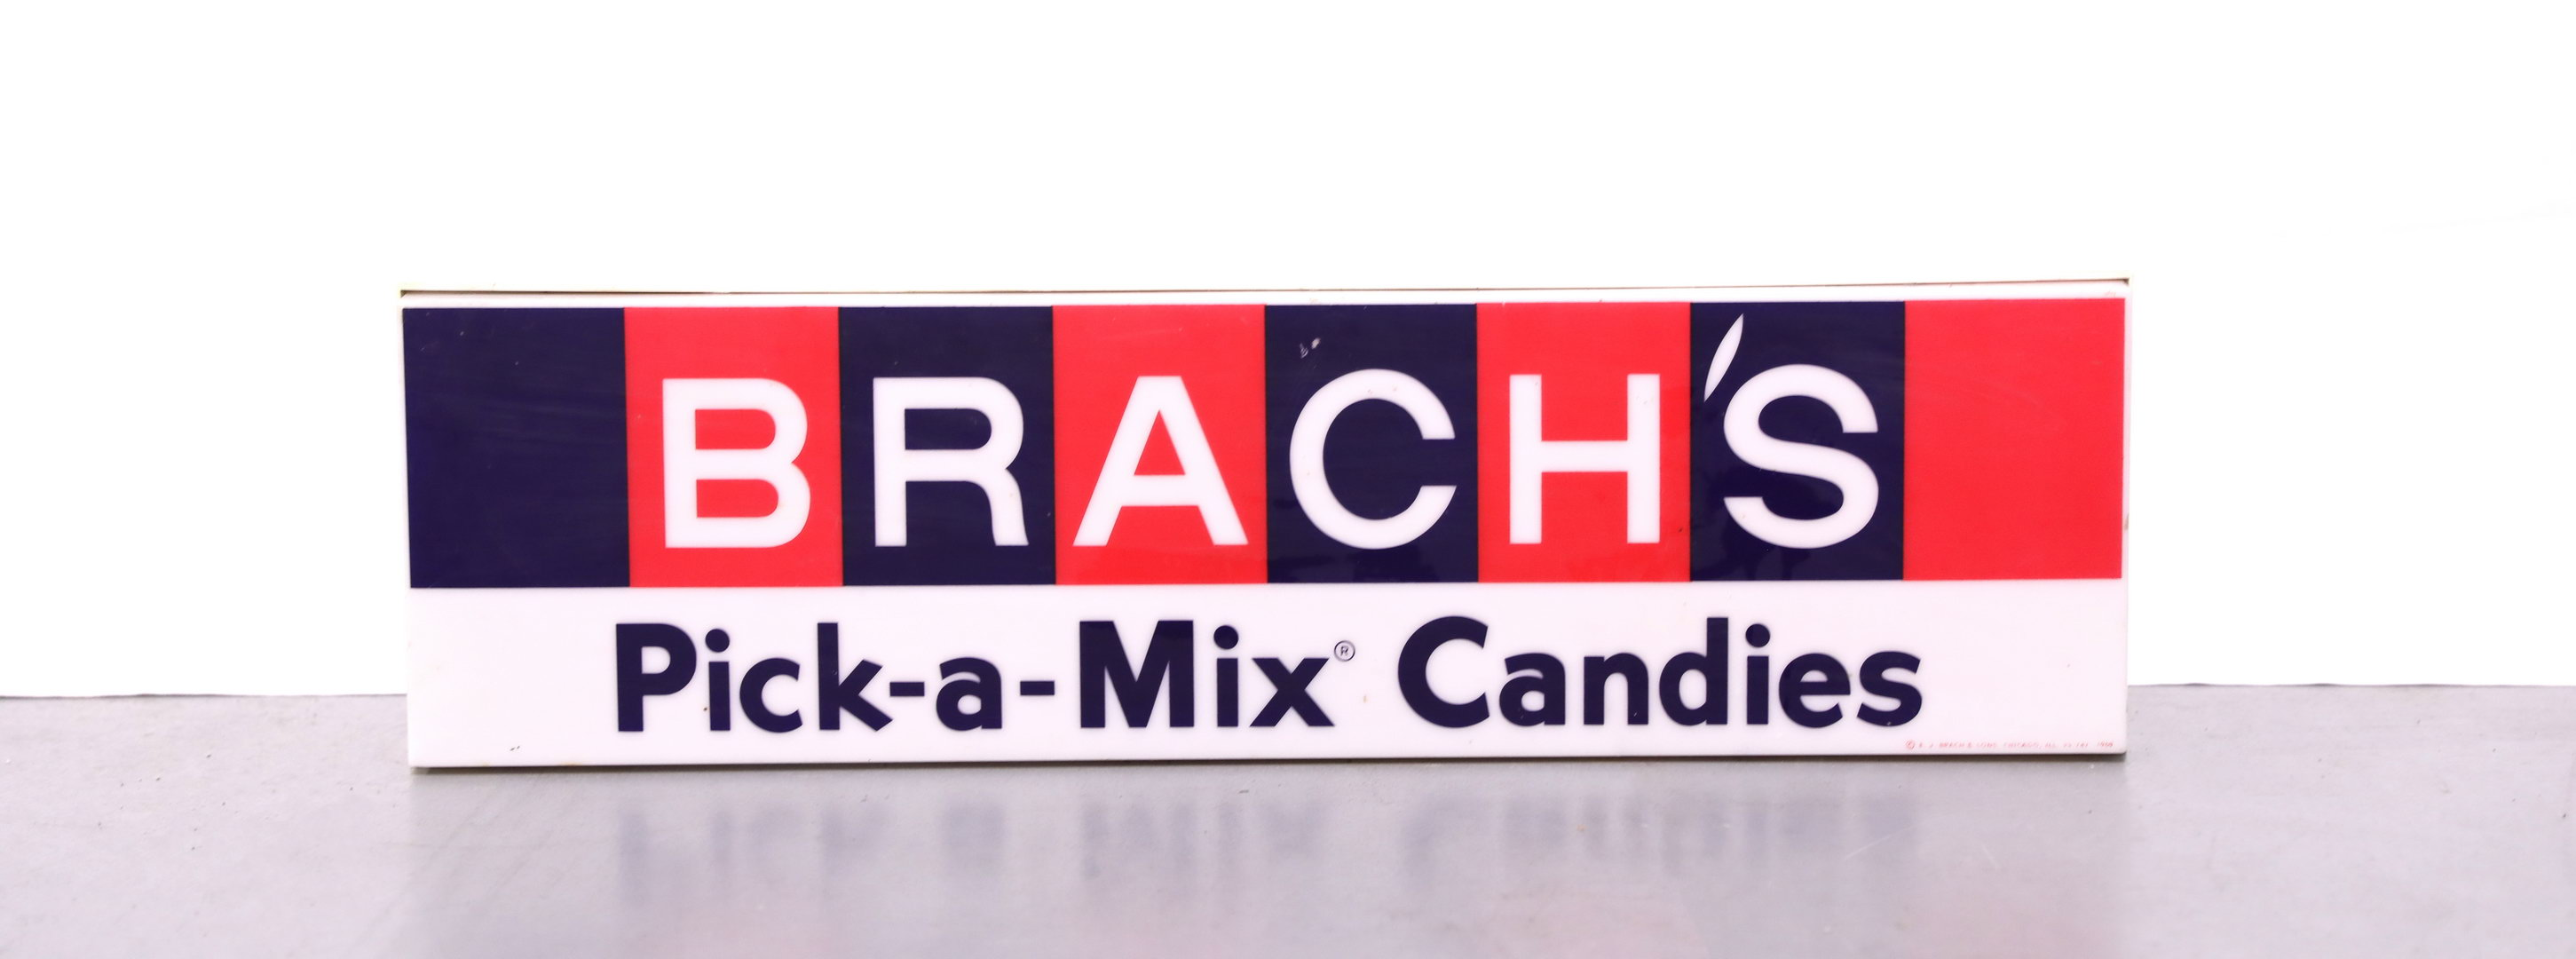 BRACH'S Pick-A-Mix Candies Lighted Plastic Sign